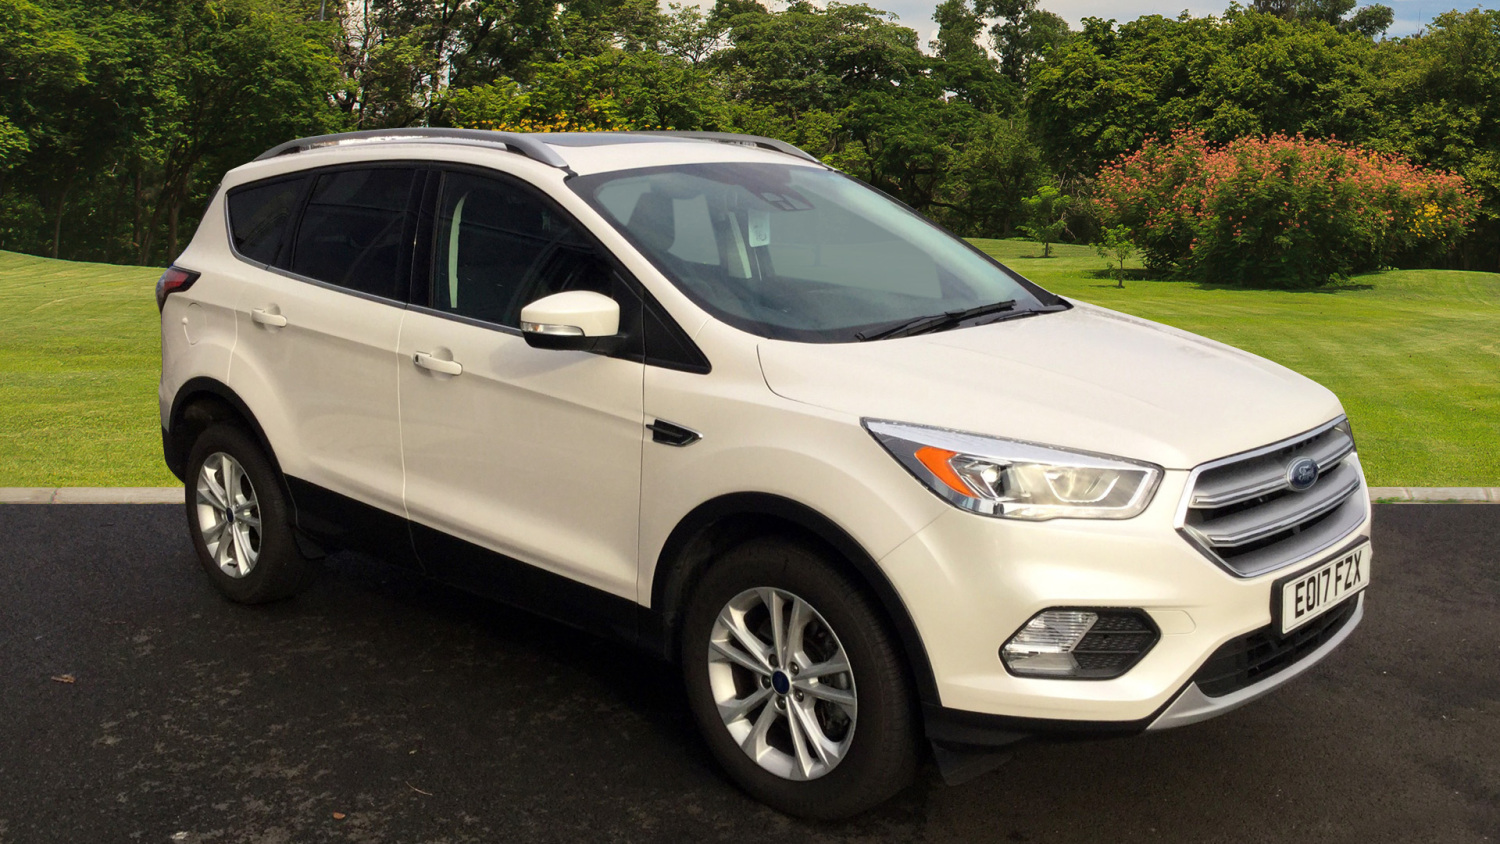 Used Ford Kuga 2 0 Tdci Titanium 5dr 2wd Diesel Estate For